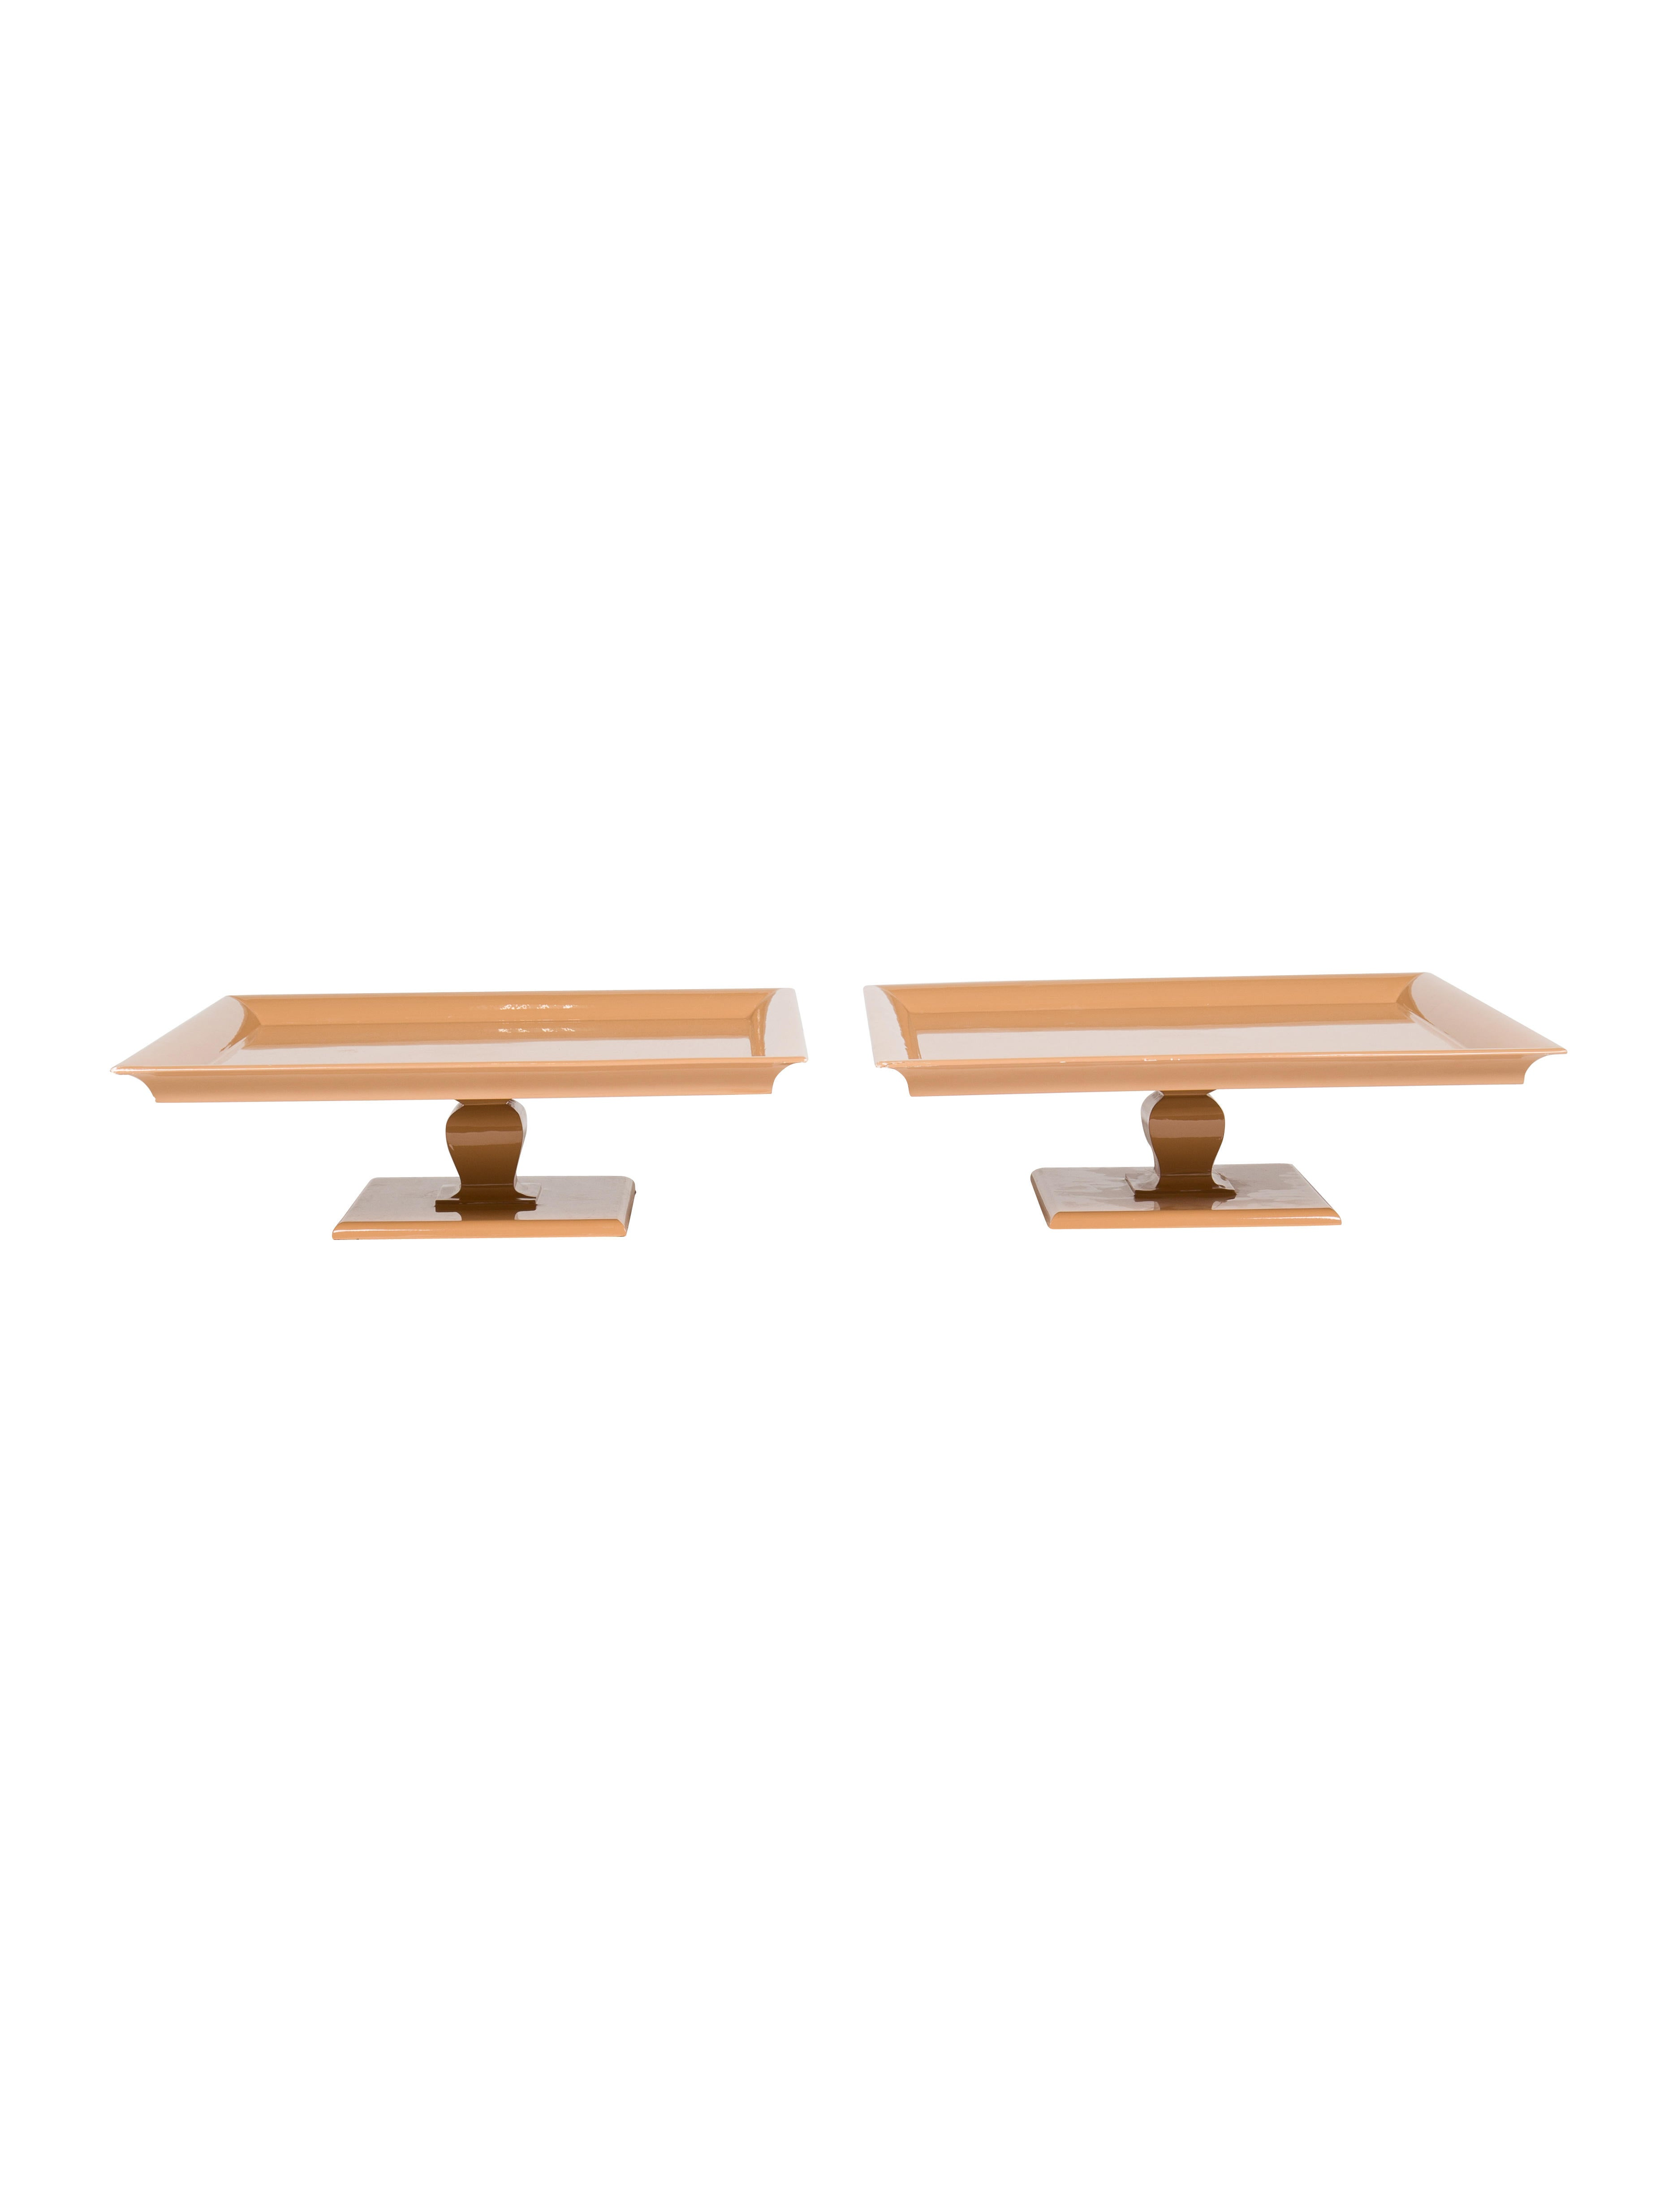 Pair Of DK Living Camel Wood Lacquer Trays